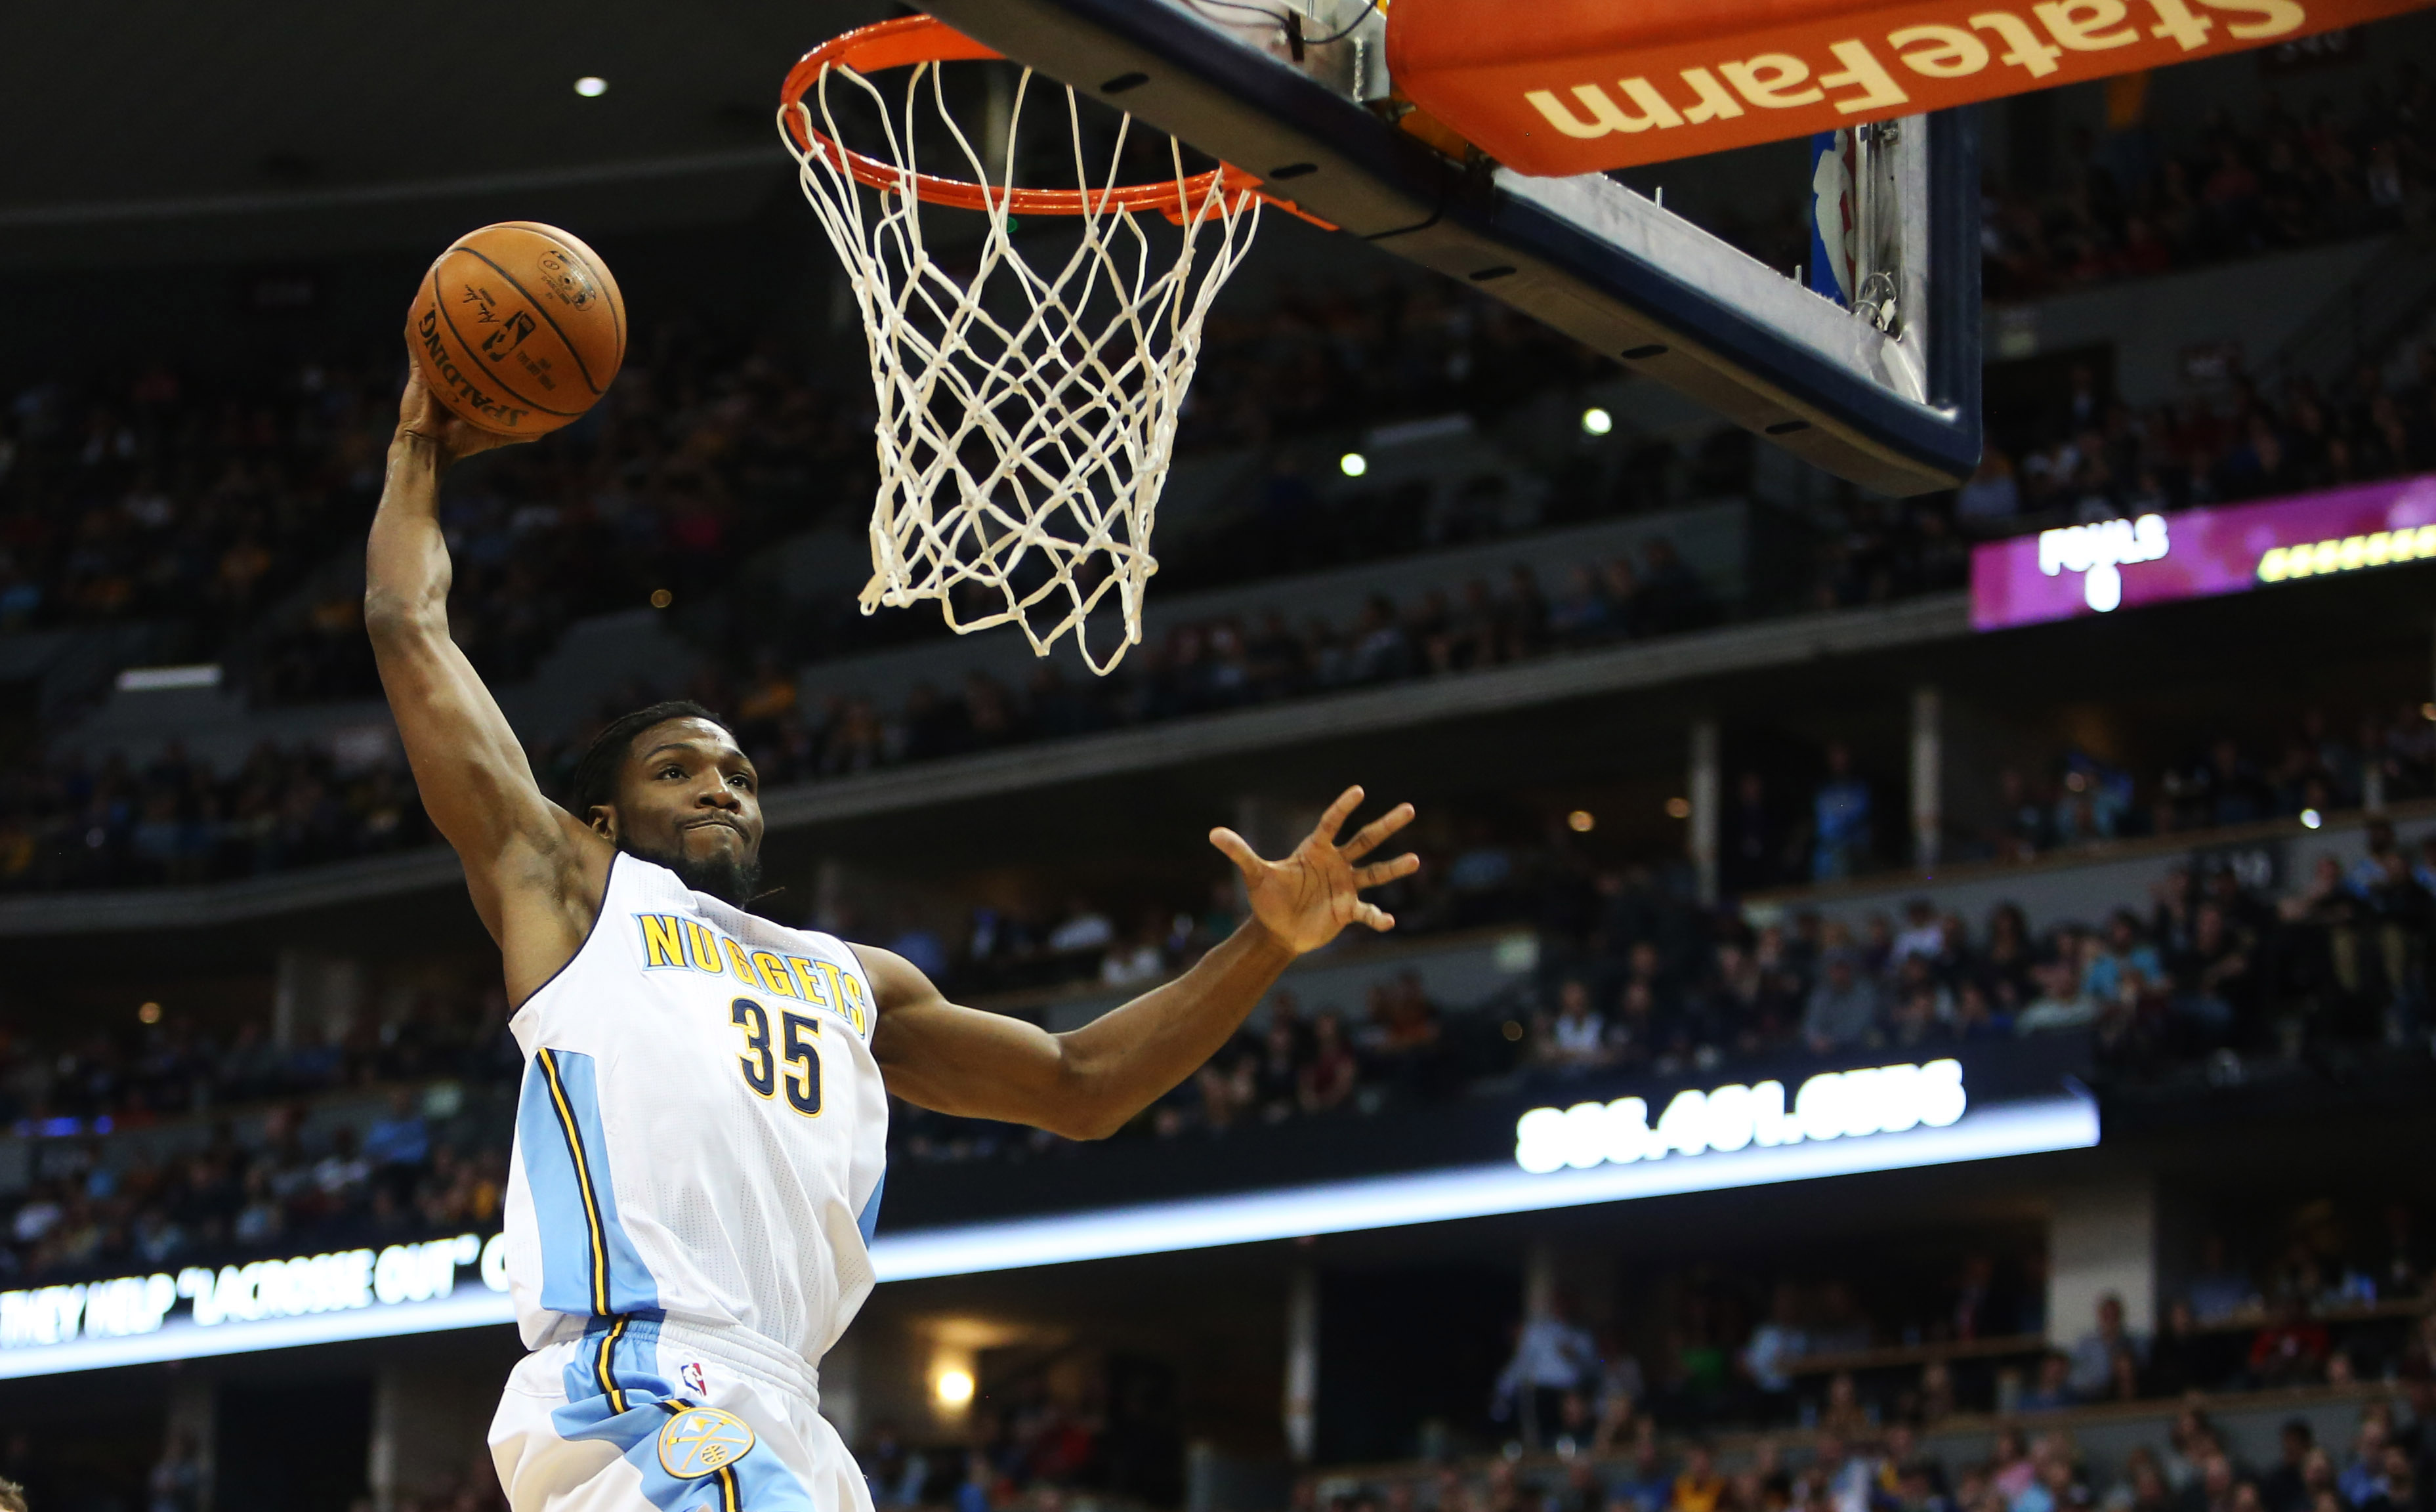 Kenneth Faried's talents are not suited for today's NBA